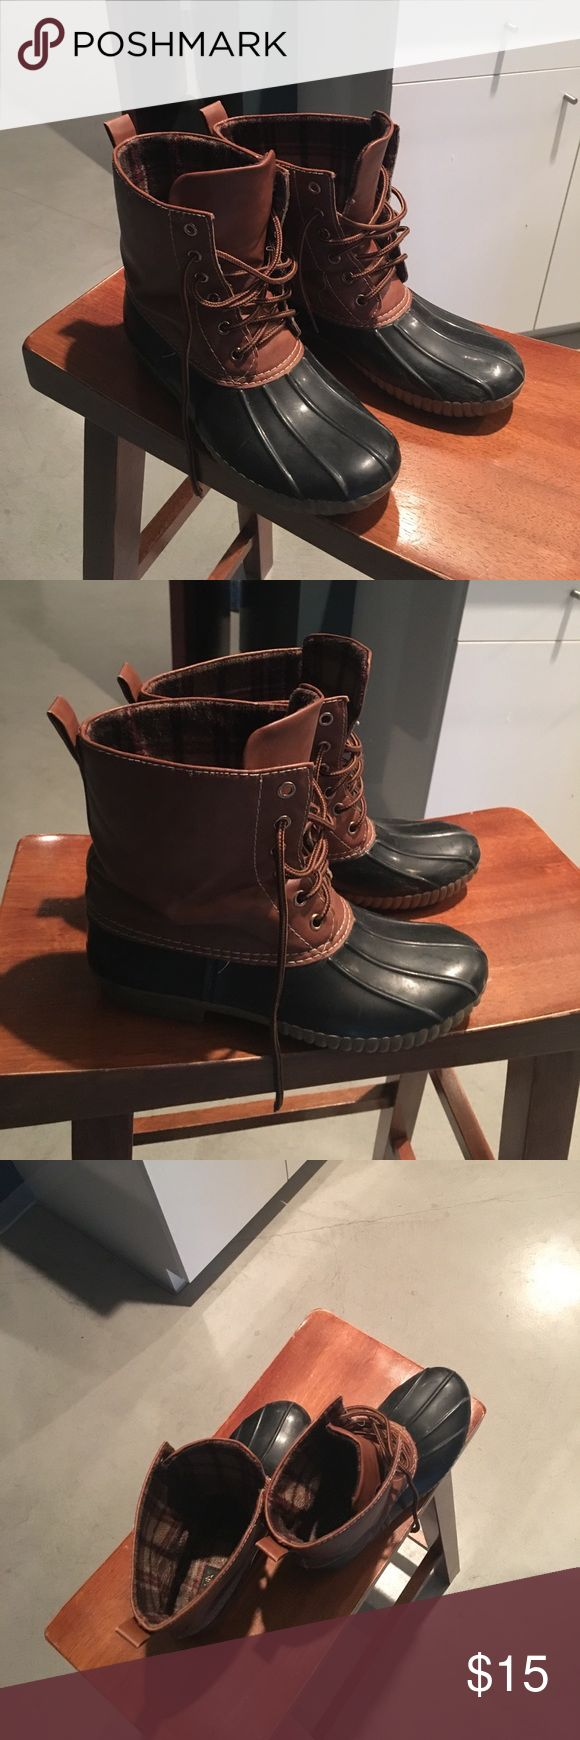 Duck Boots Women's duck boots. Worn a lot but in good condition on the outside. The inside fabric is worn a little. See picture above. Size 8. **These are not LL Bean Brand they are Adriana Branb. ** L.L. Bean Shoes